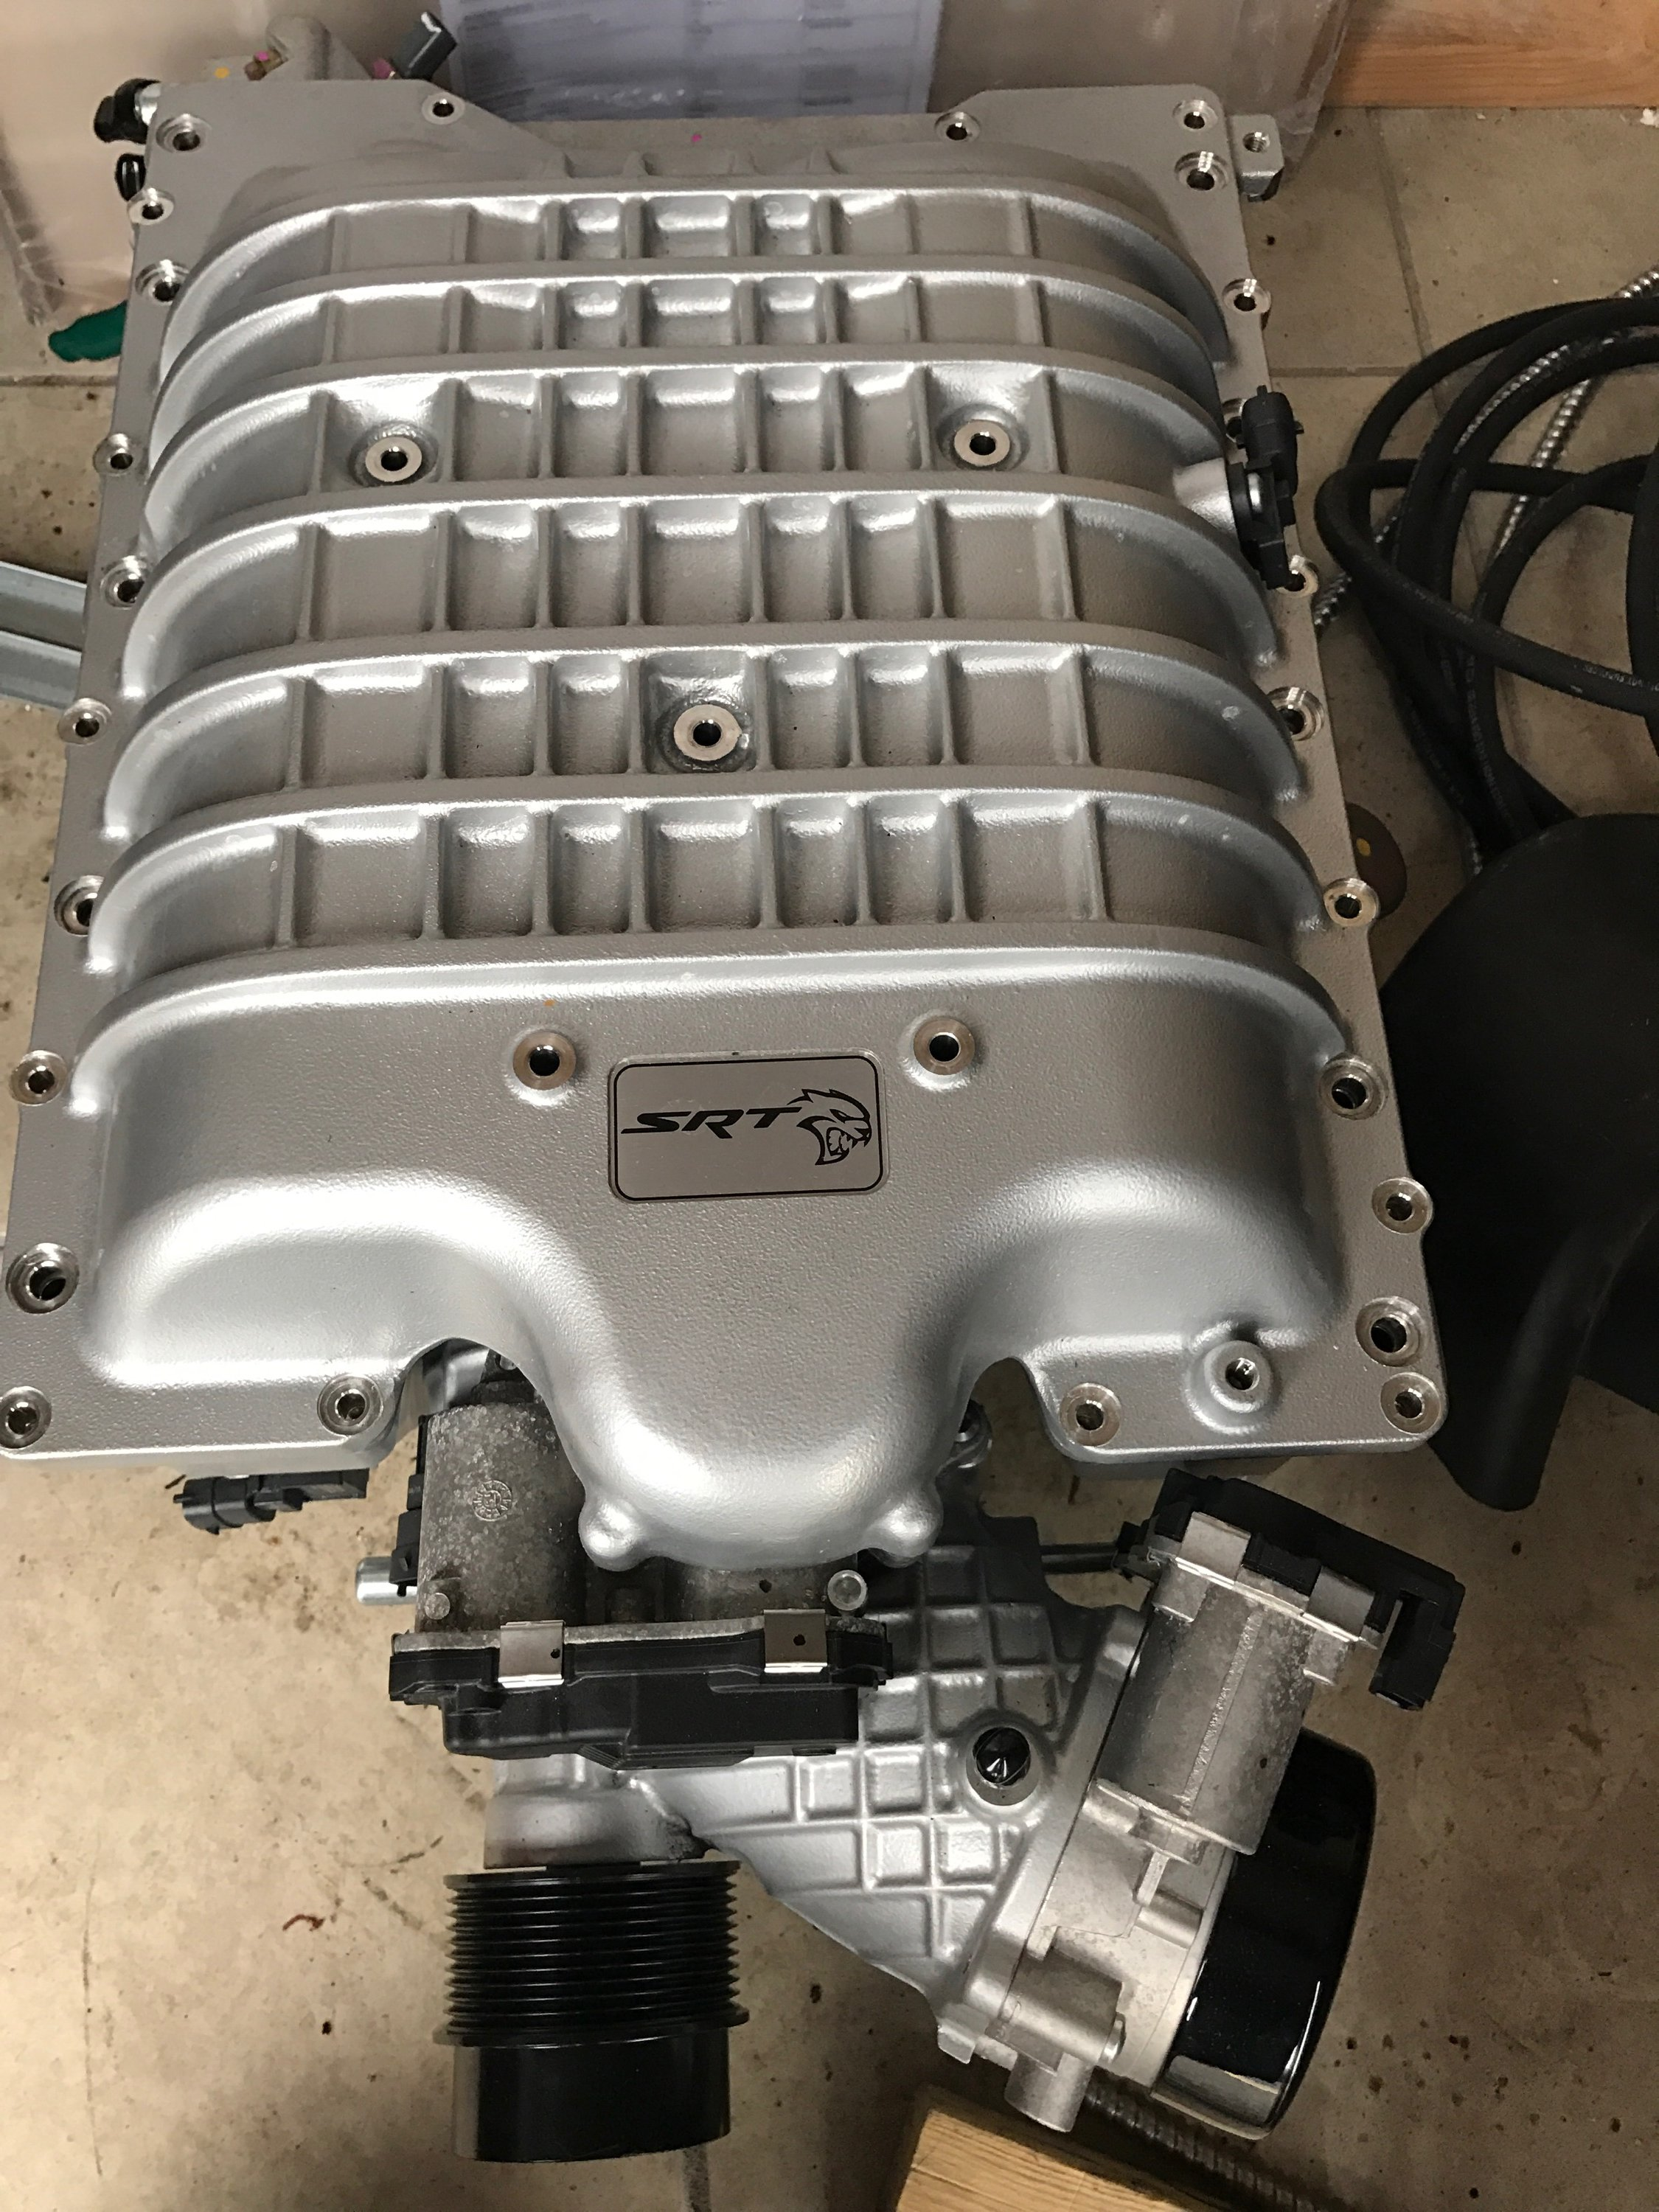 Whipple 4.5L Intercooled Supercharger (Tuner Kit) | Page 7 ...